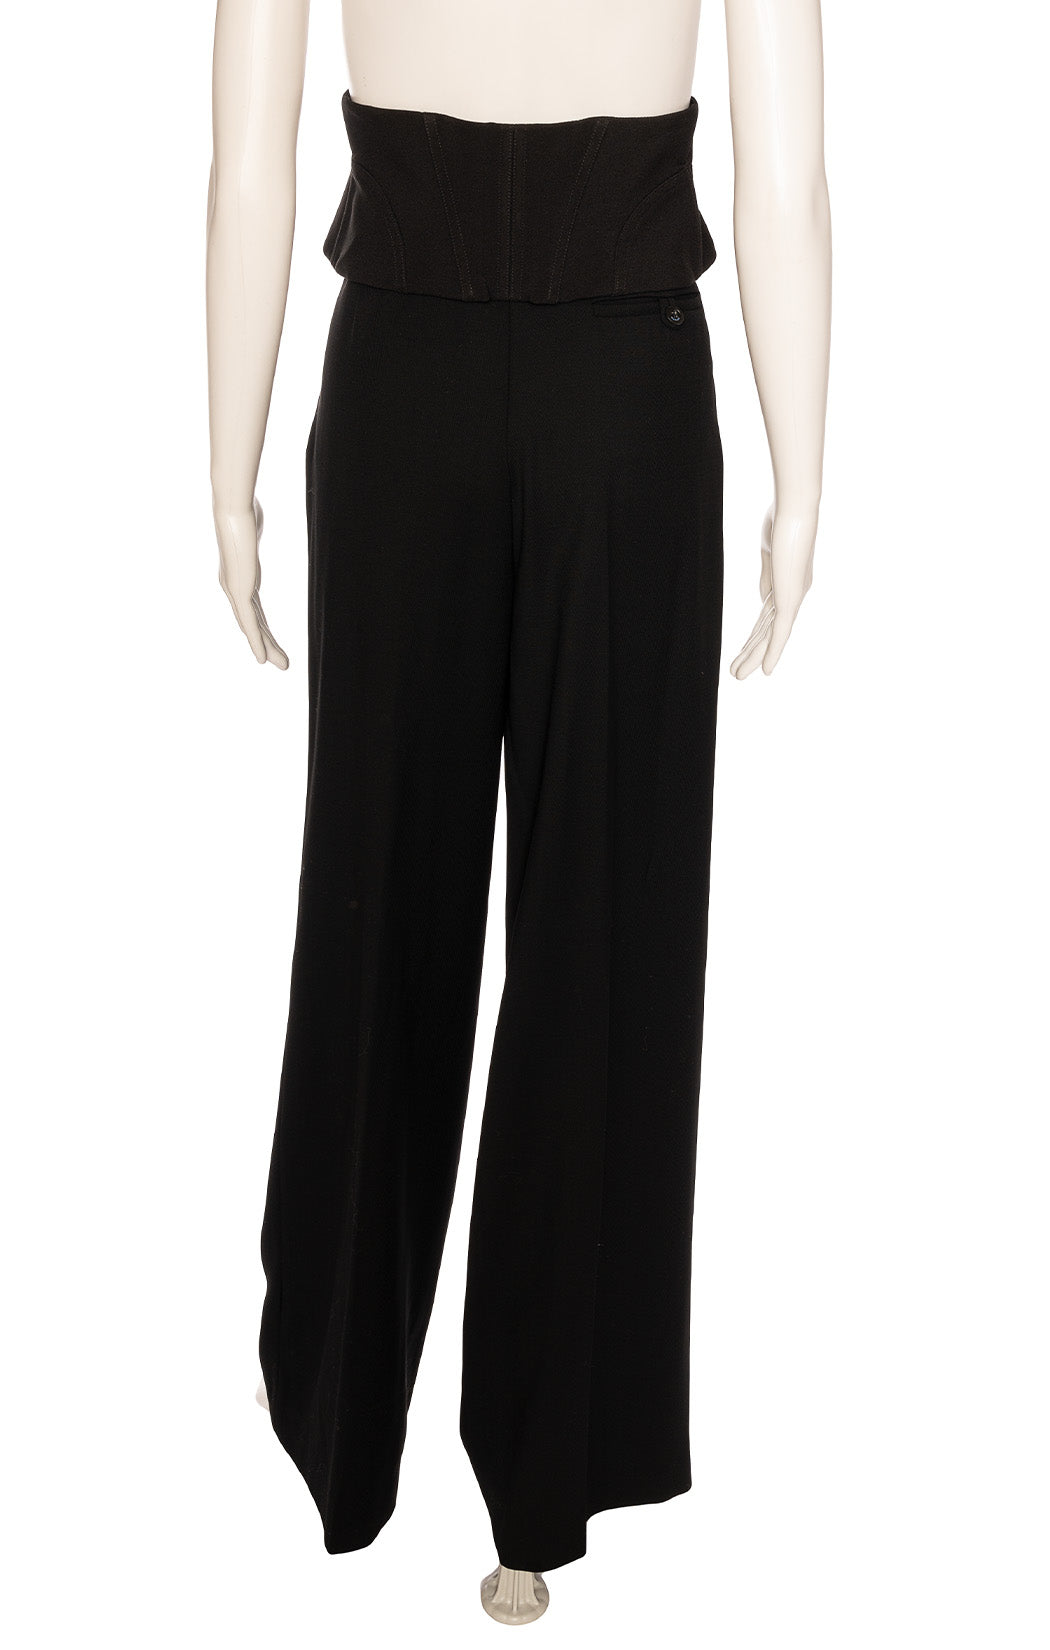 MUGLER with tags Corset and Pants Size: FR 38 (comparable to US 4-6)